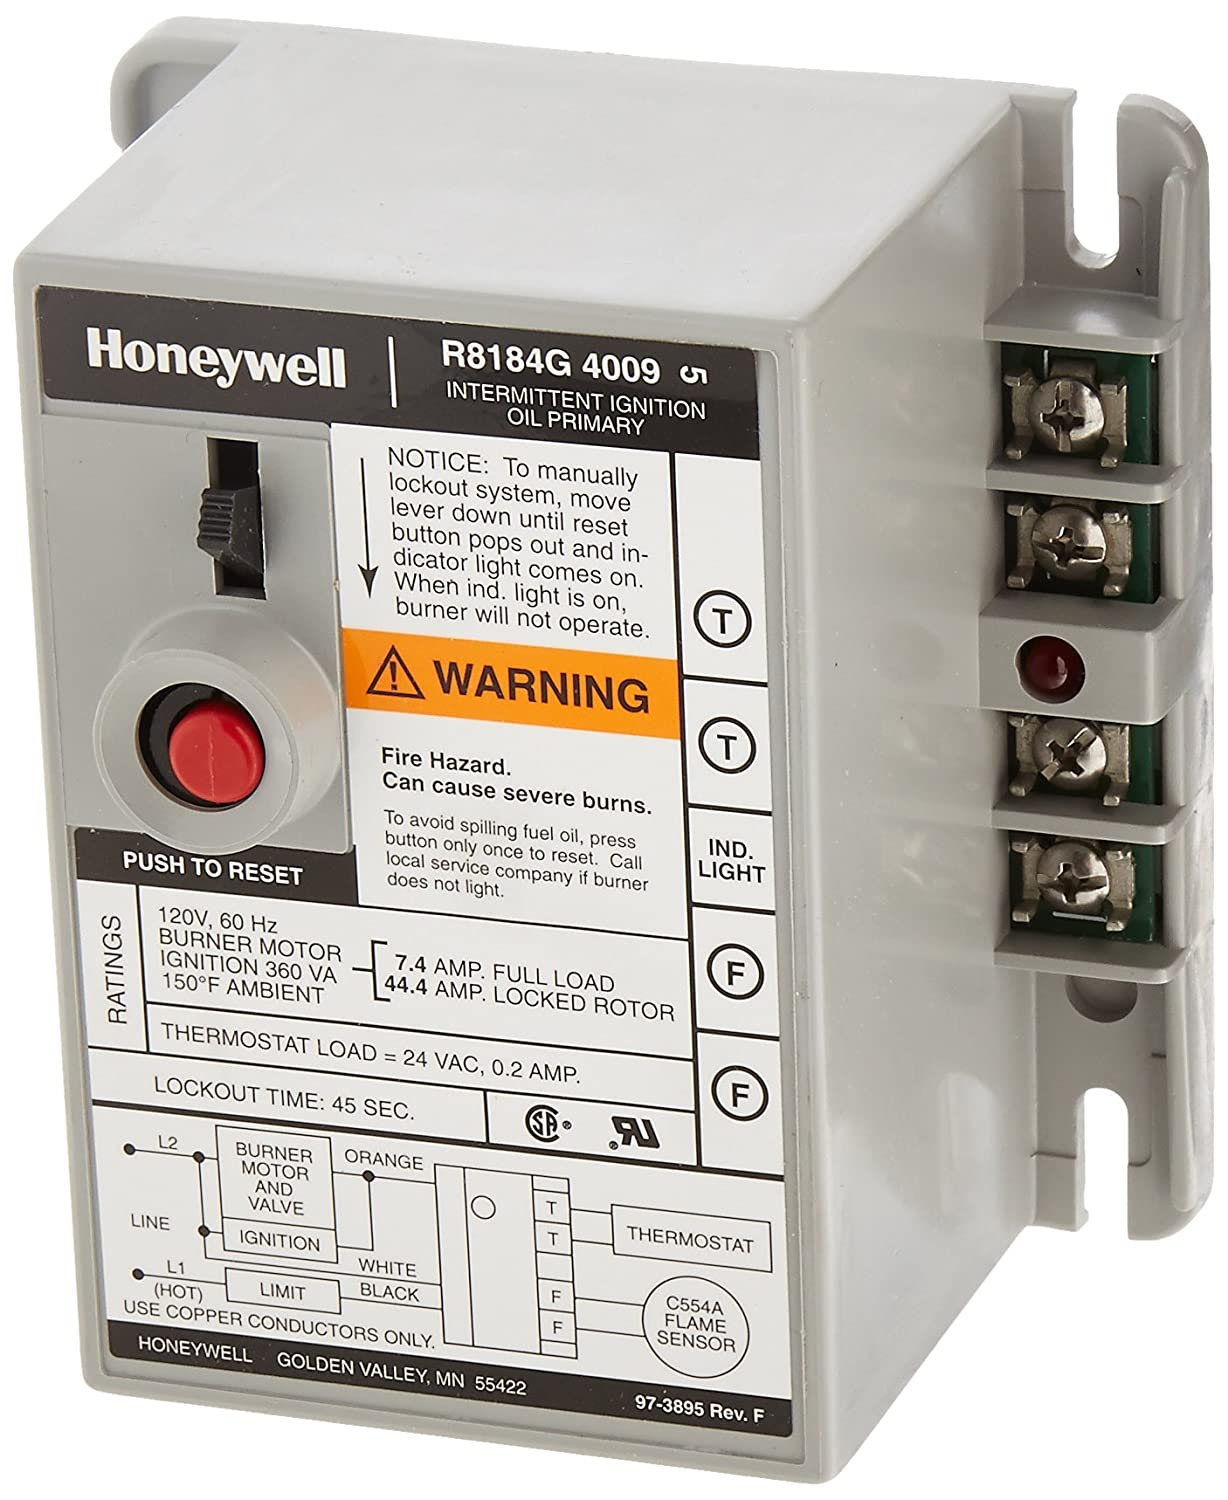 Wiring Diagram Honeywell Zone Valve Search For Diagrams V8043f1036 Burner Control 39 3